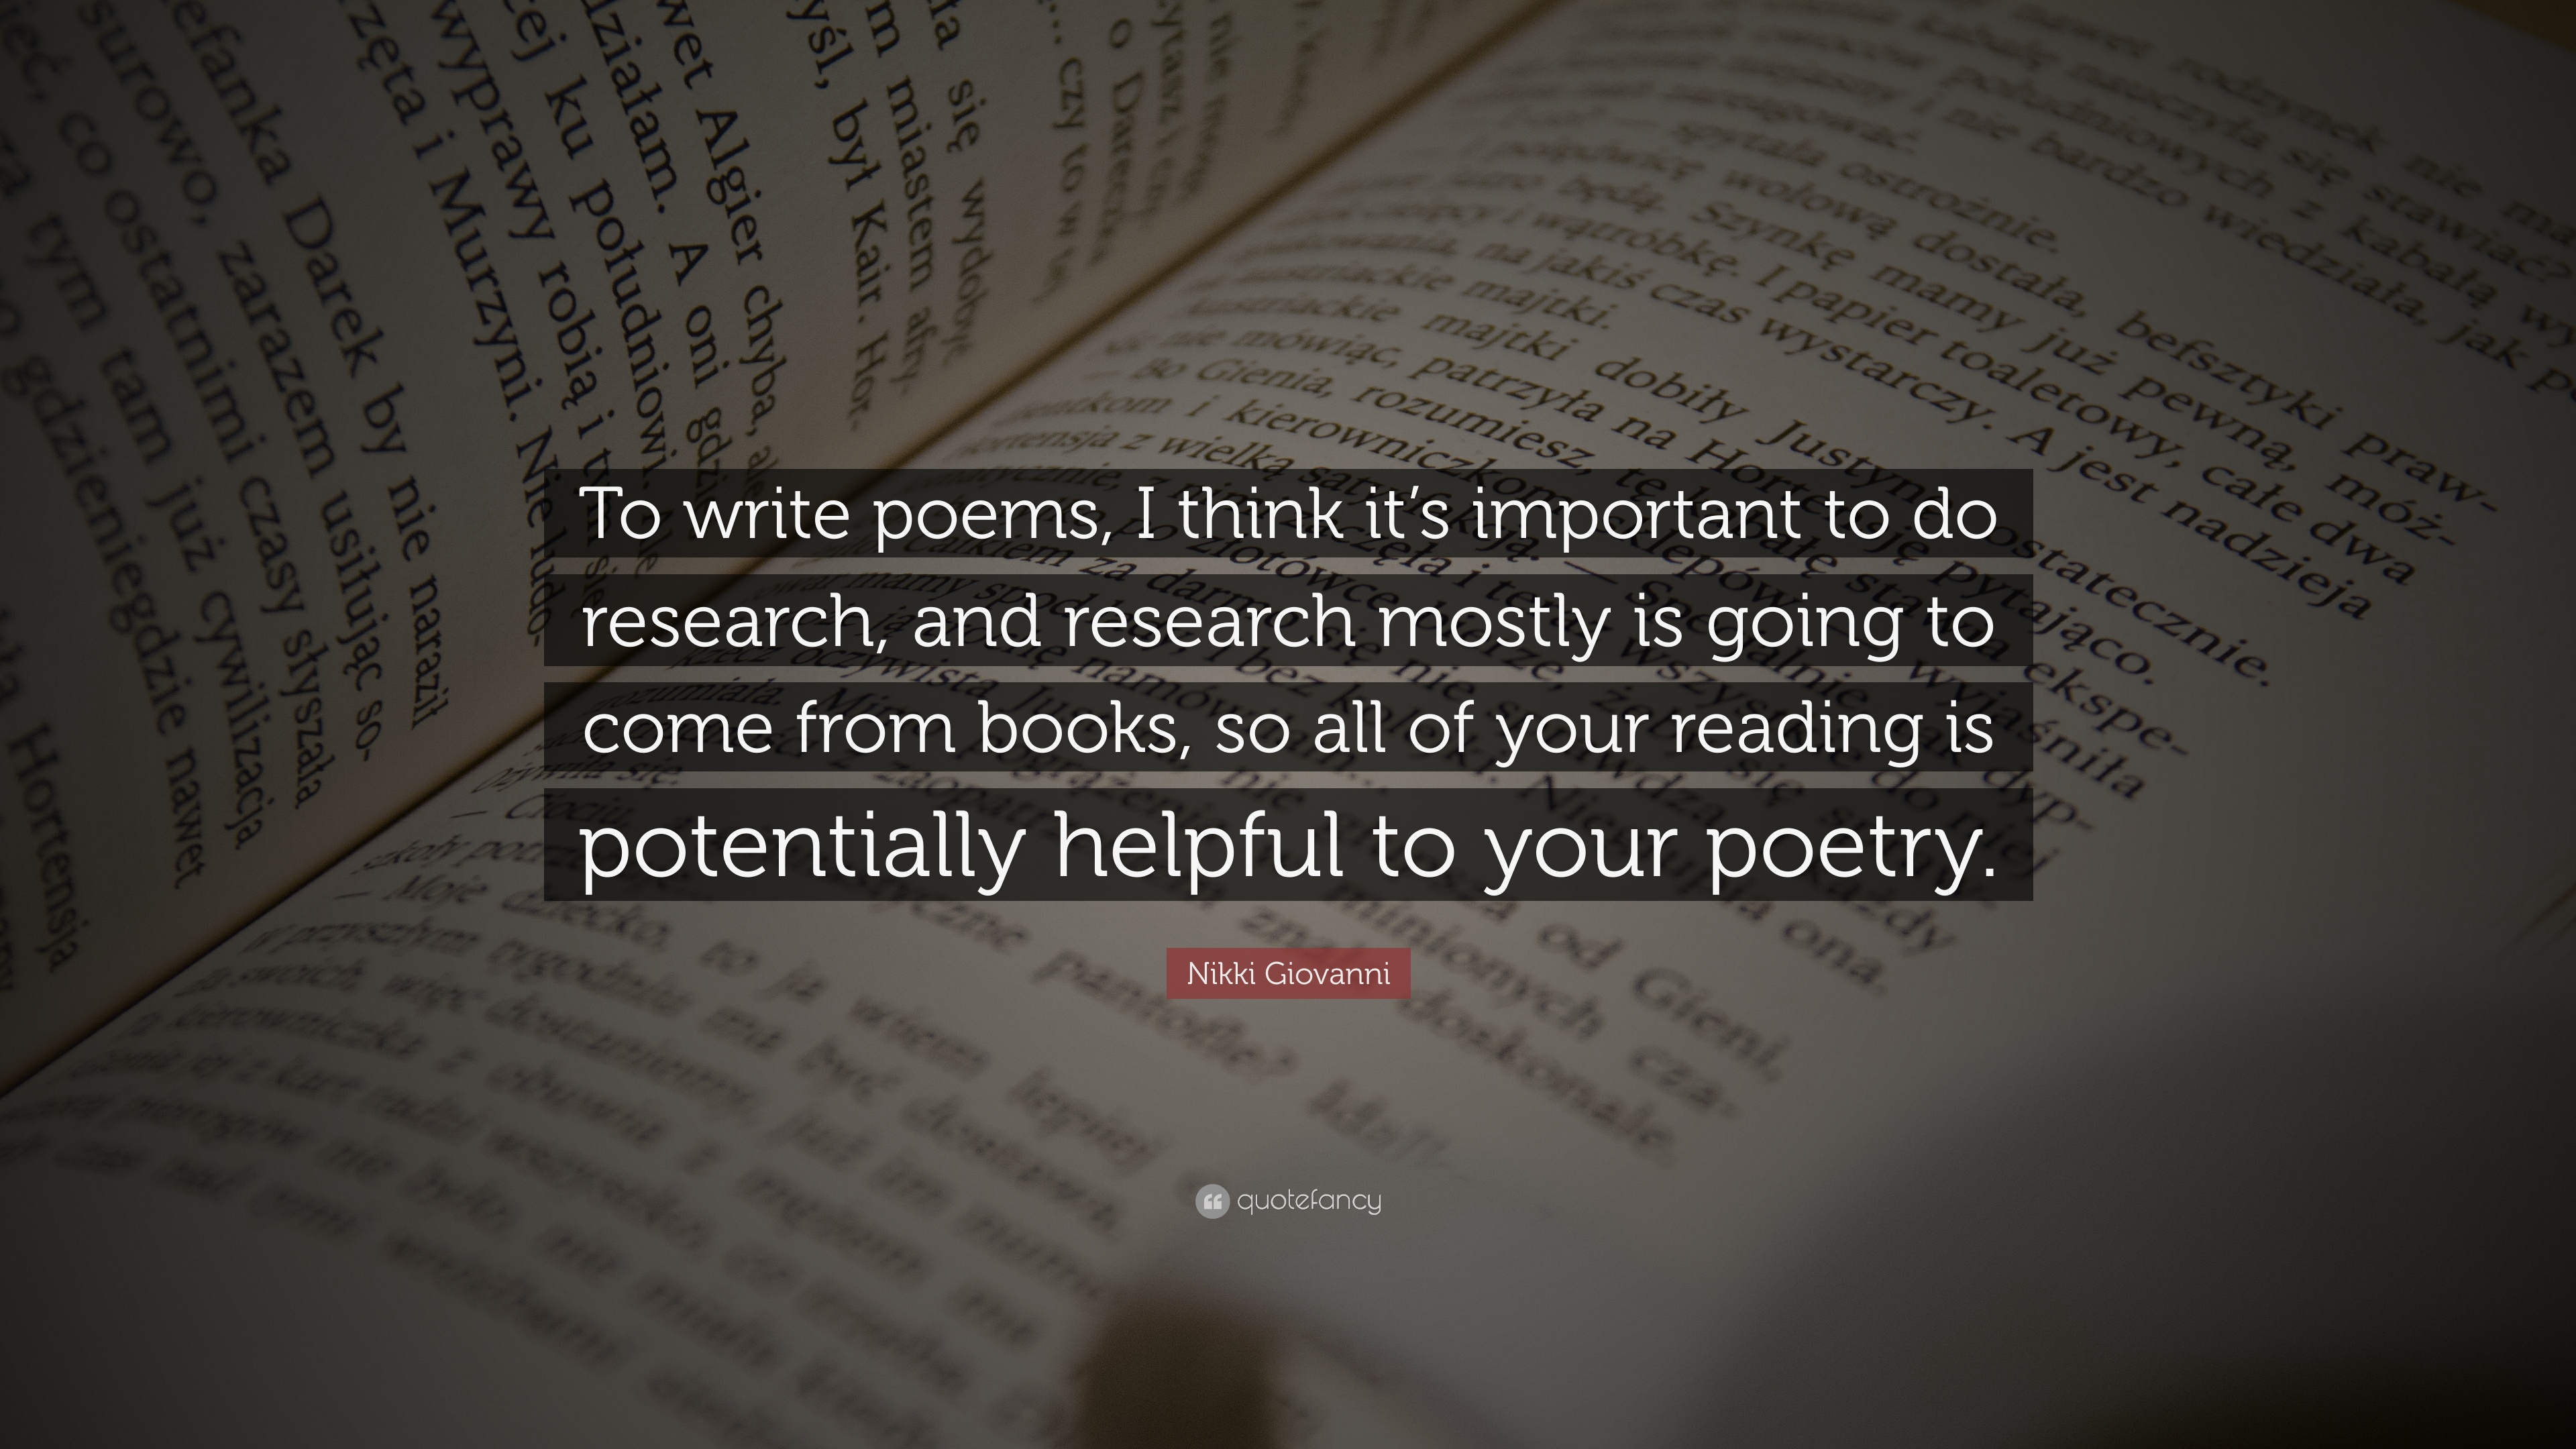 writing poems Writing about poetry can be difficult a poem does not affect its reader in quite the same way that a work of prose does to be able to understand and write about the way a poem works, you need to spend some time thinking analytically about the poem before you start your draft.